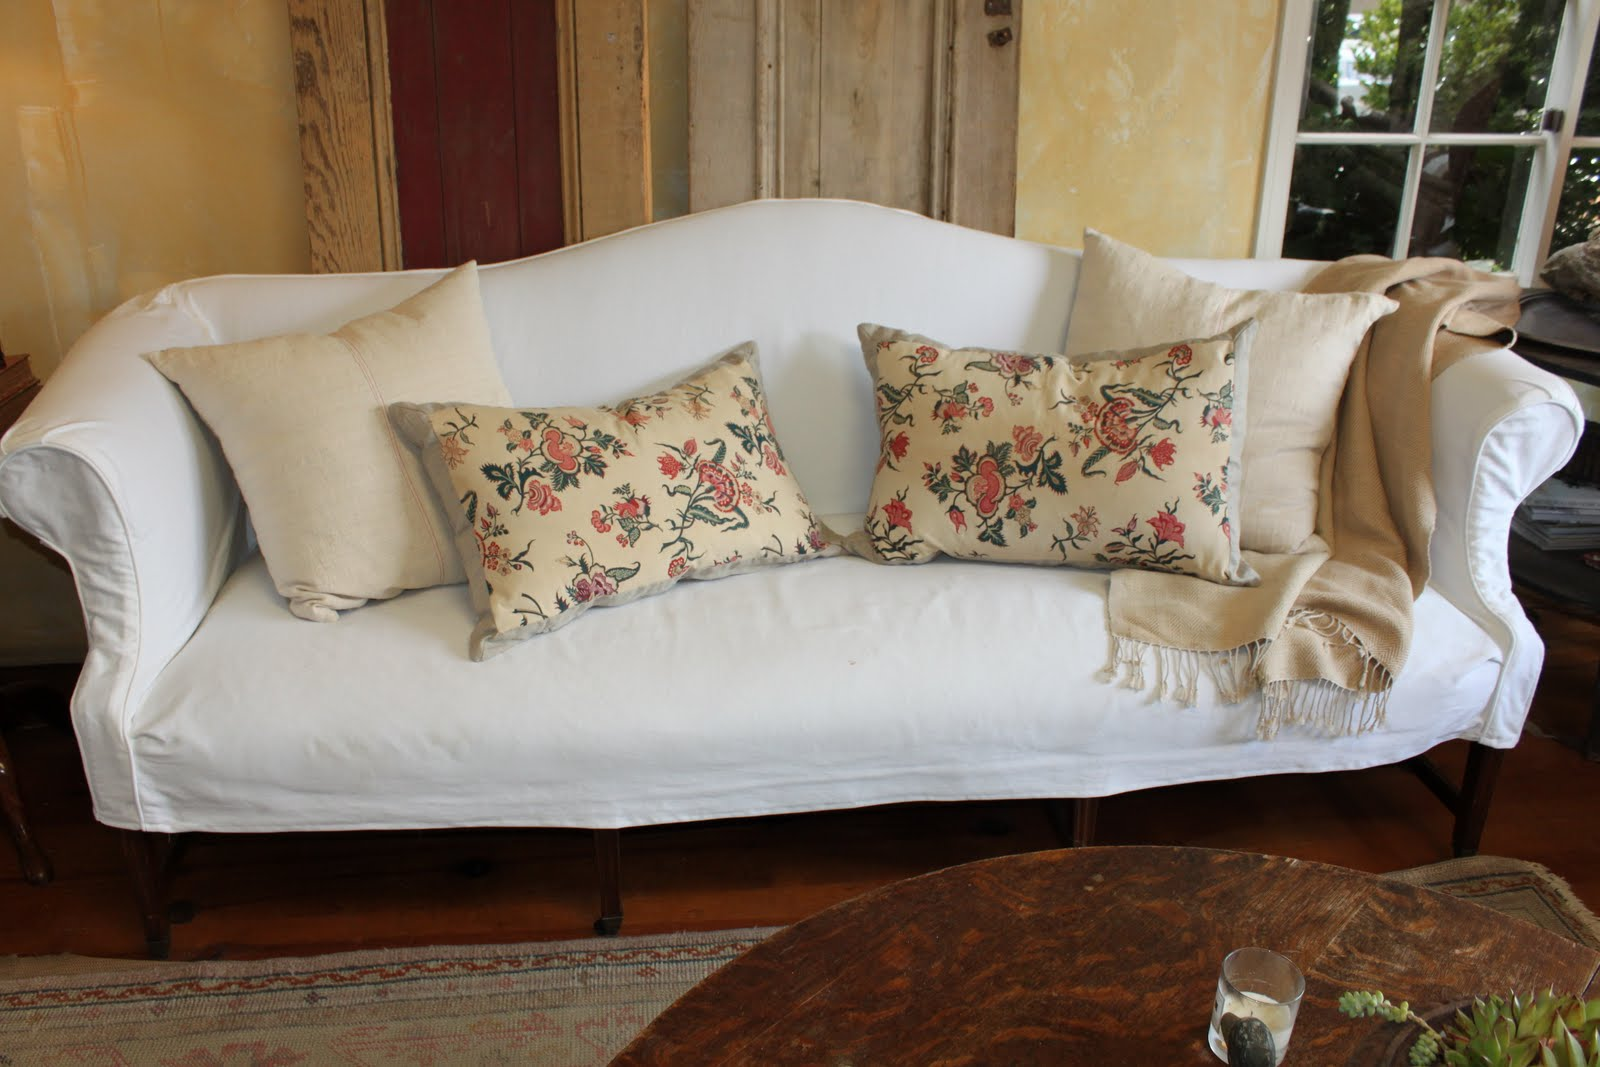 Blue springs home blog one sofa so many looks for Chintz couch